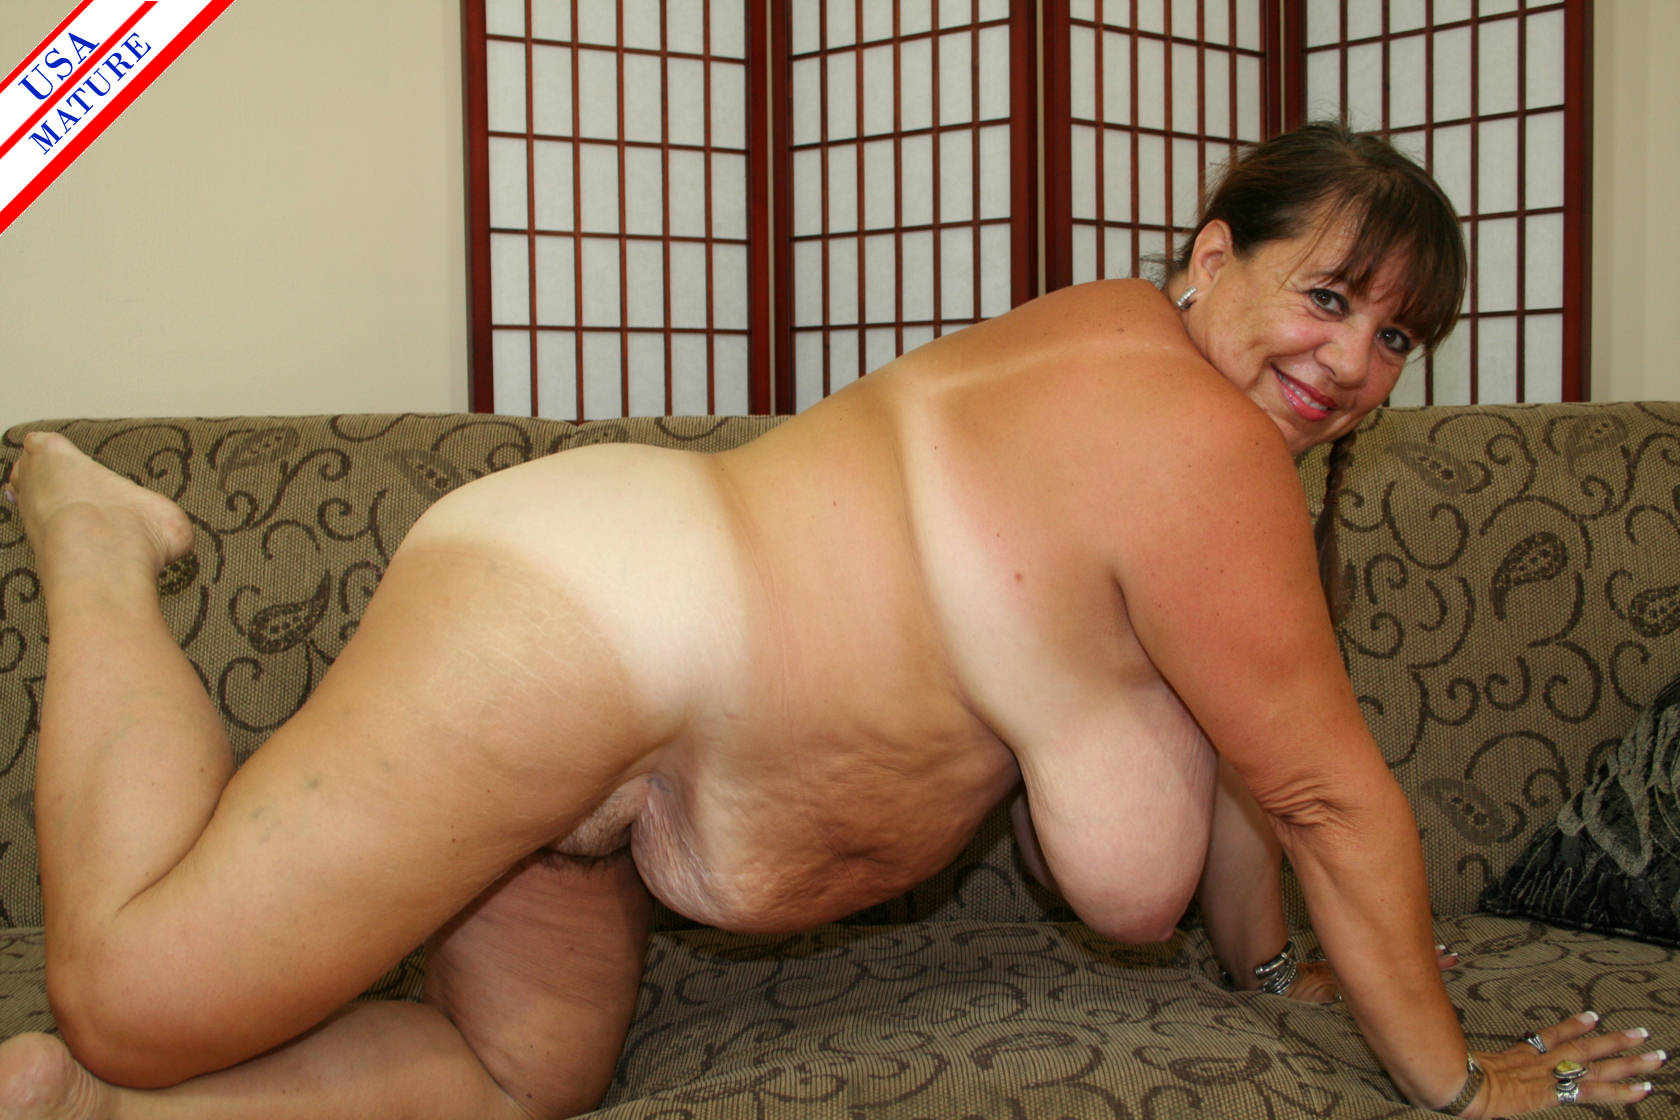 This big breasted mature housewife from New York plays with her hairy pussy